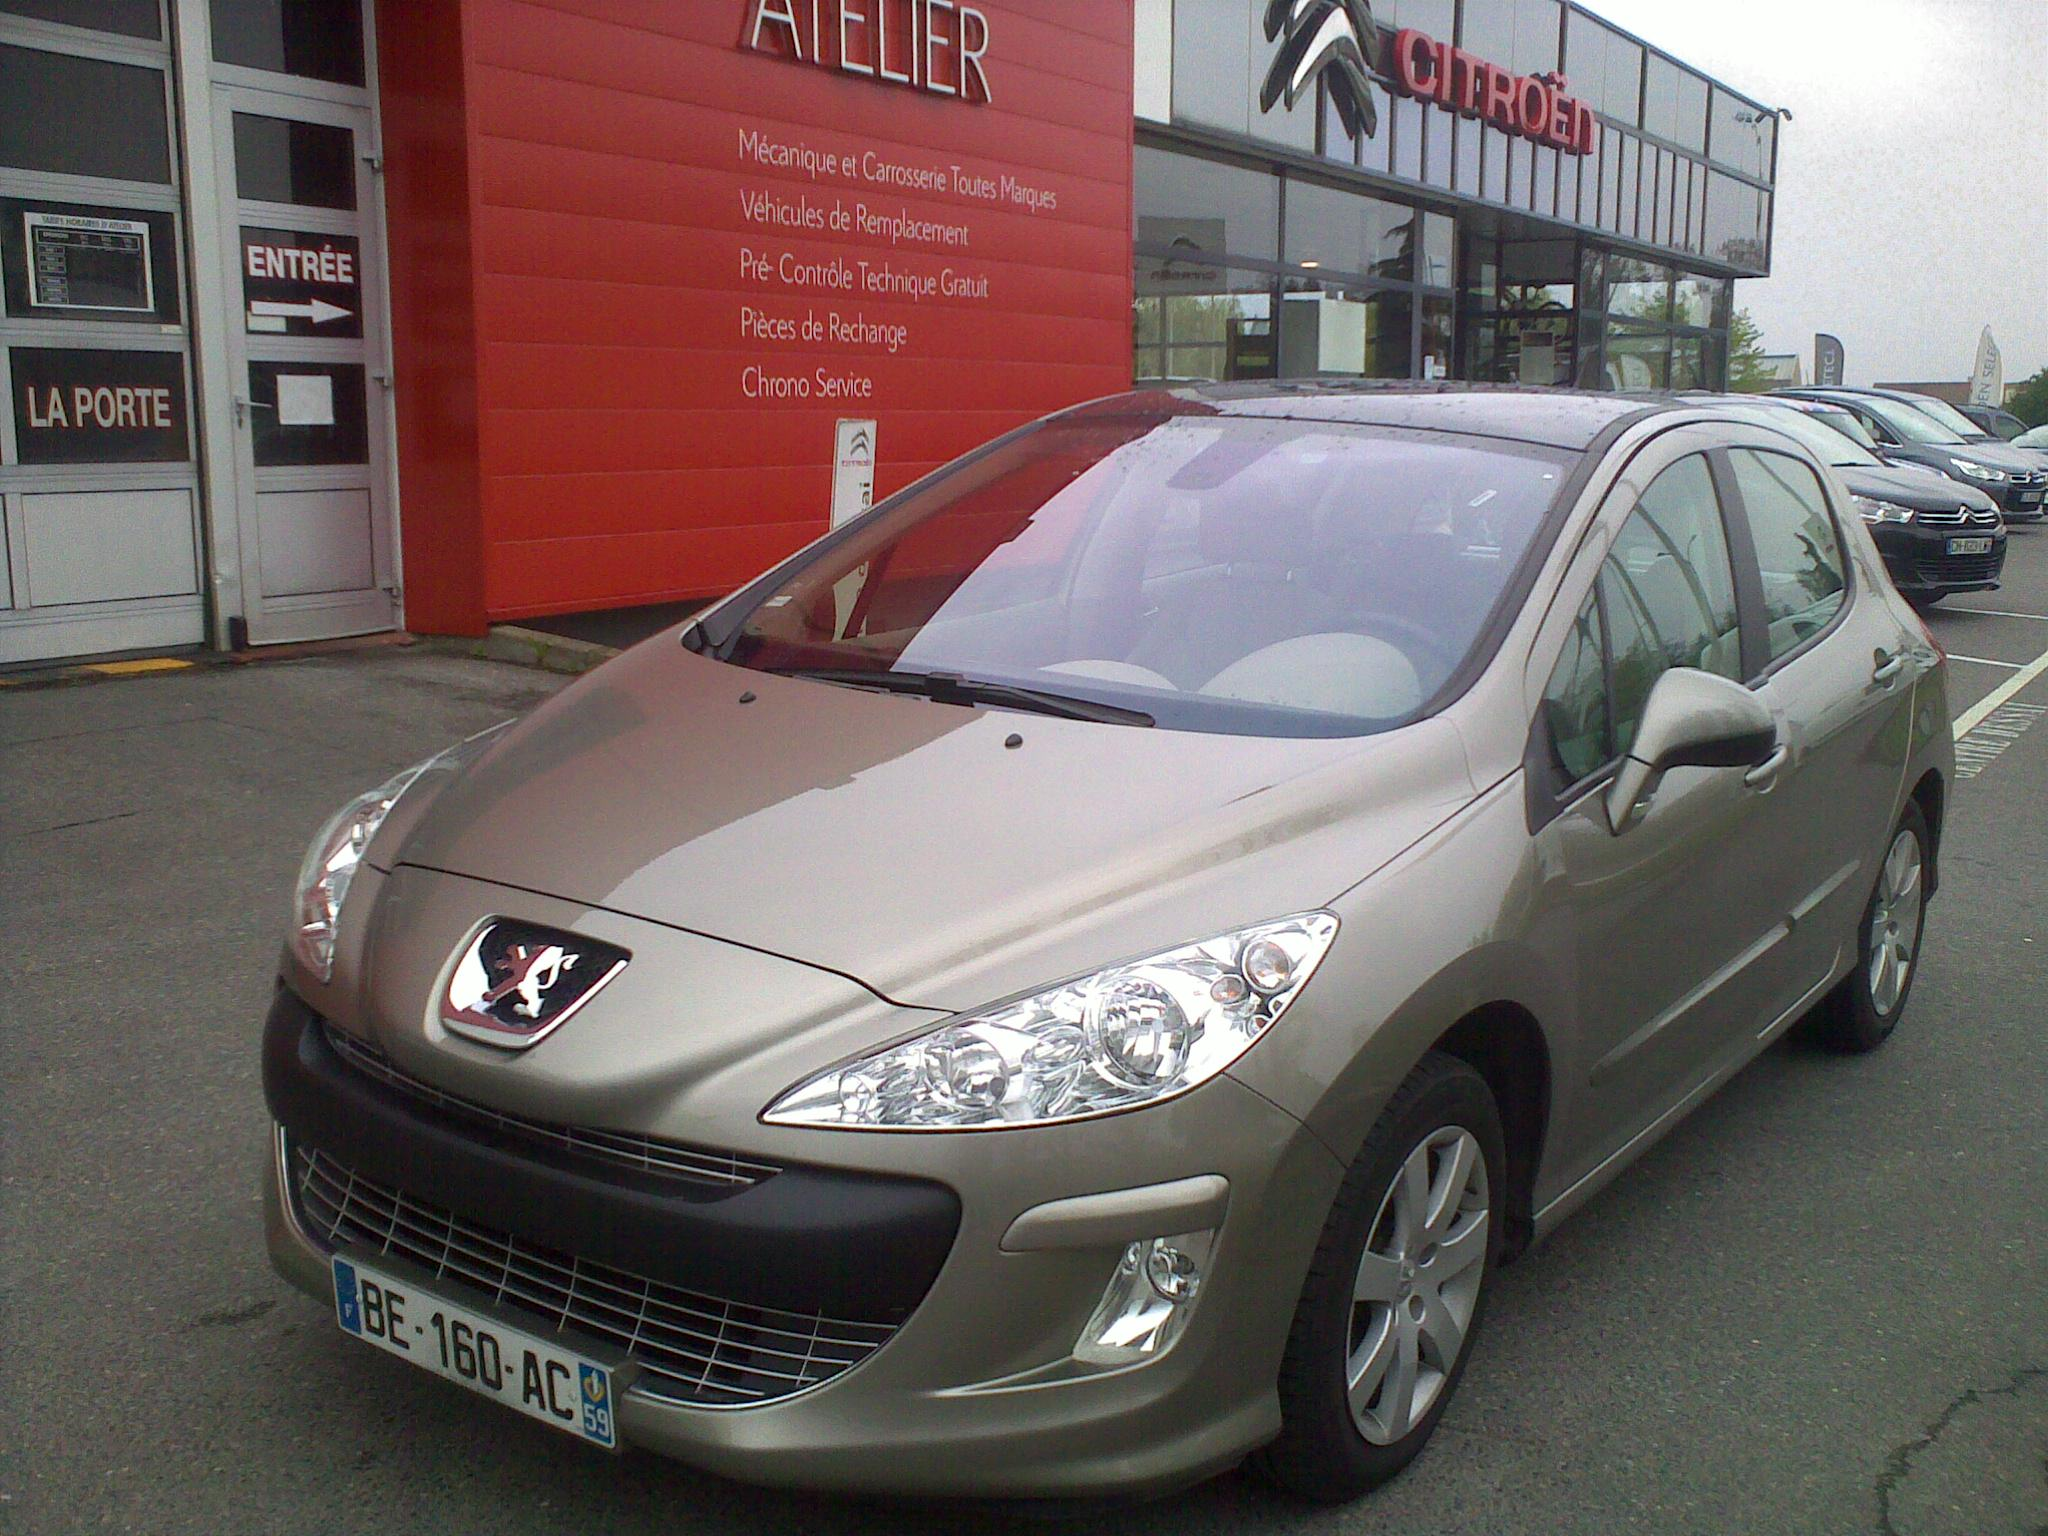 Left hand drive PEUGEOT 308 1.6 HDI 112 AUTO French reg